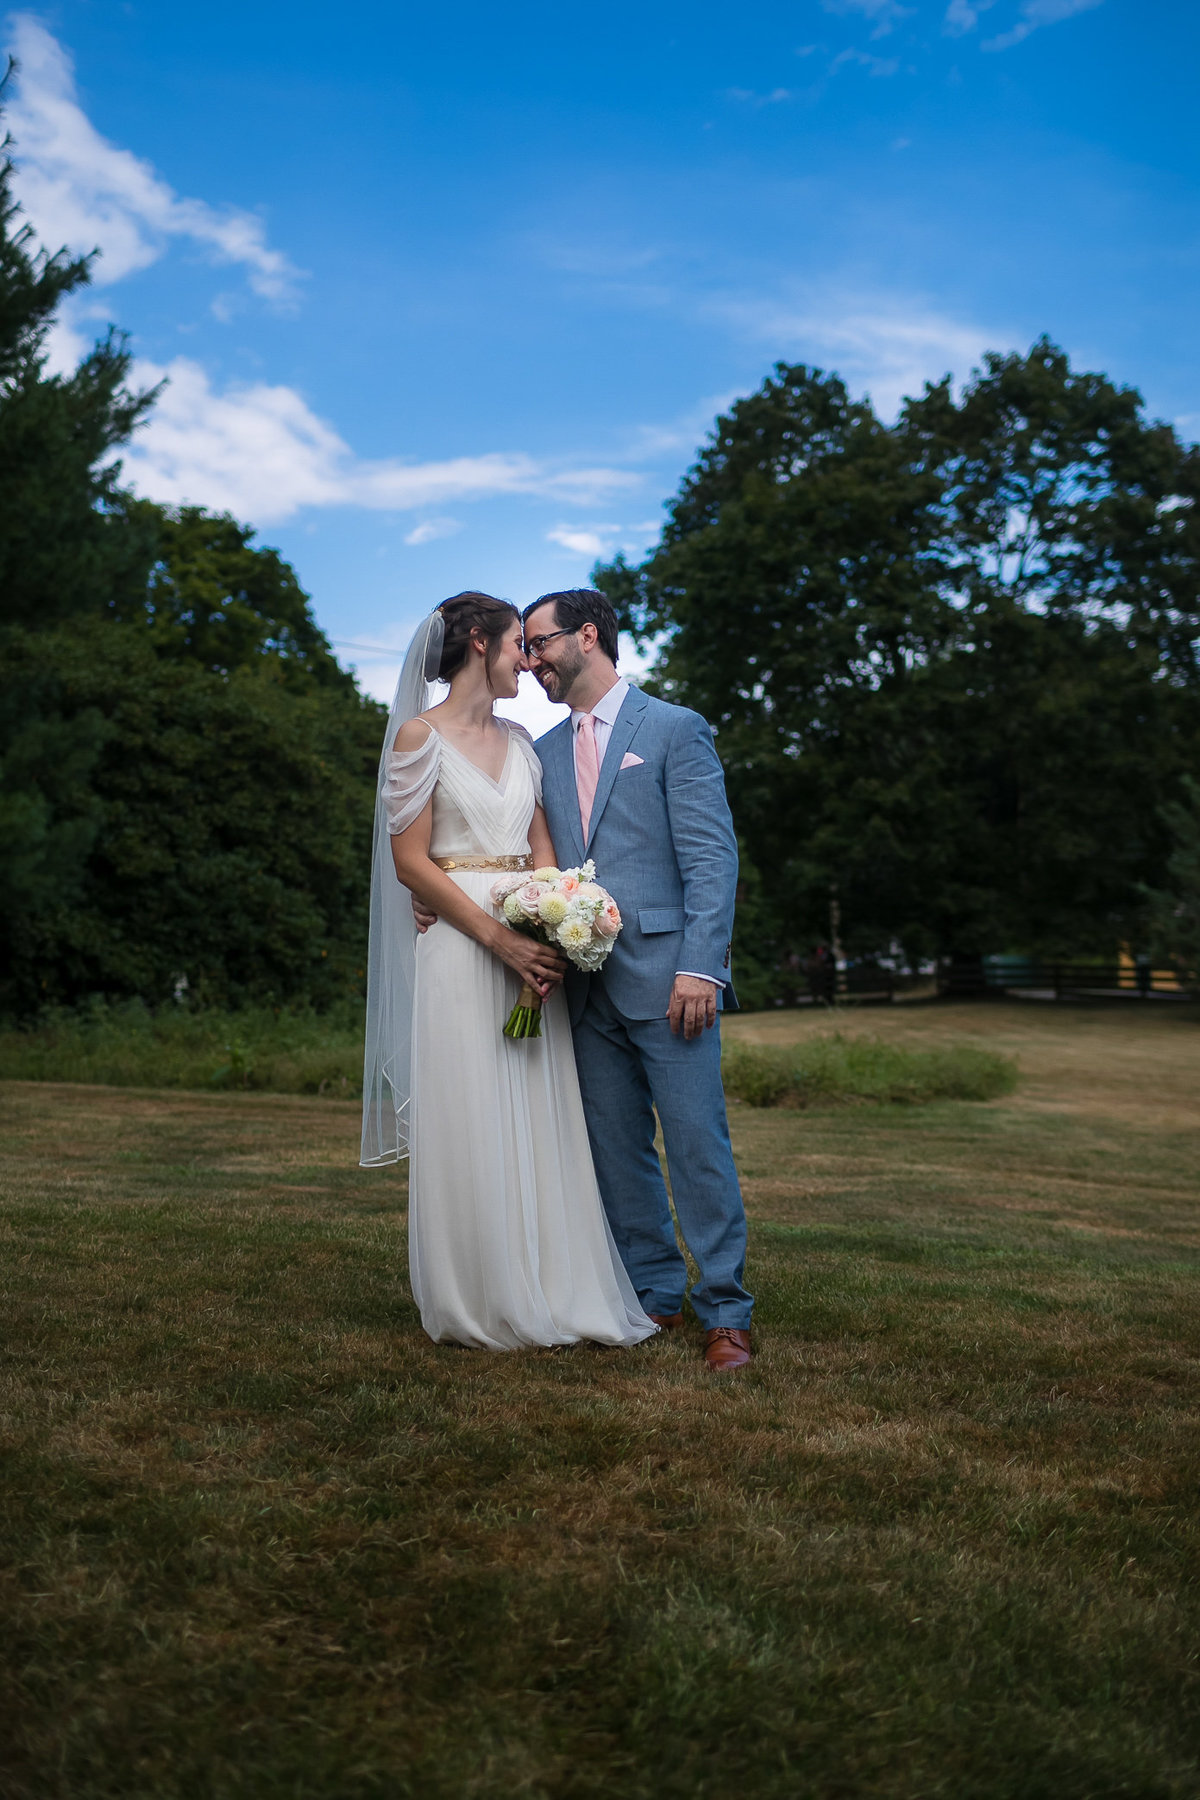 Brooklyn Wedding Photographer | Rob Allen Photography | Destination Wedding Photographer at Mt. Sinai New York  bride and groom heads together for portrait